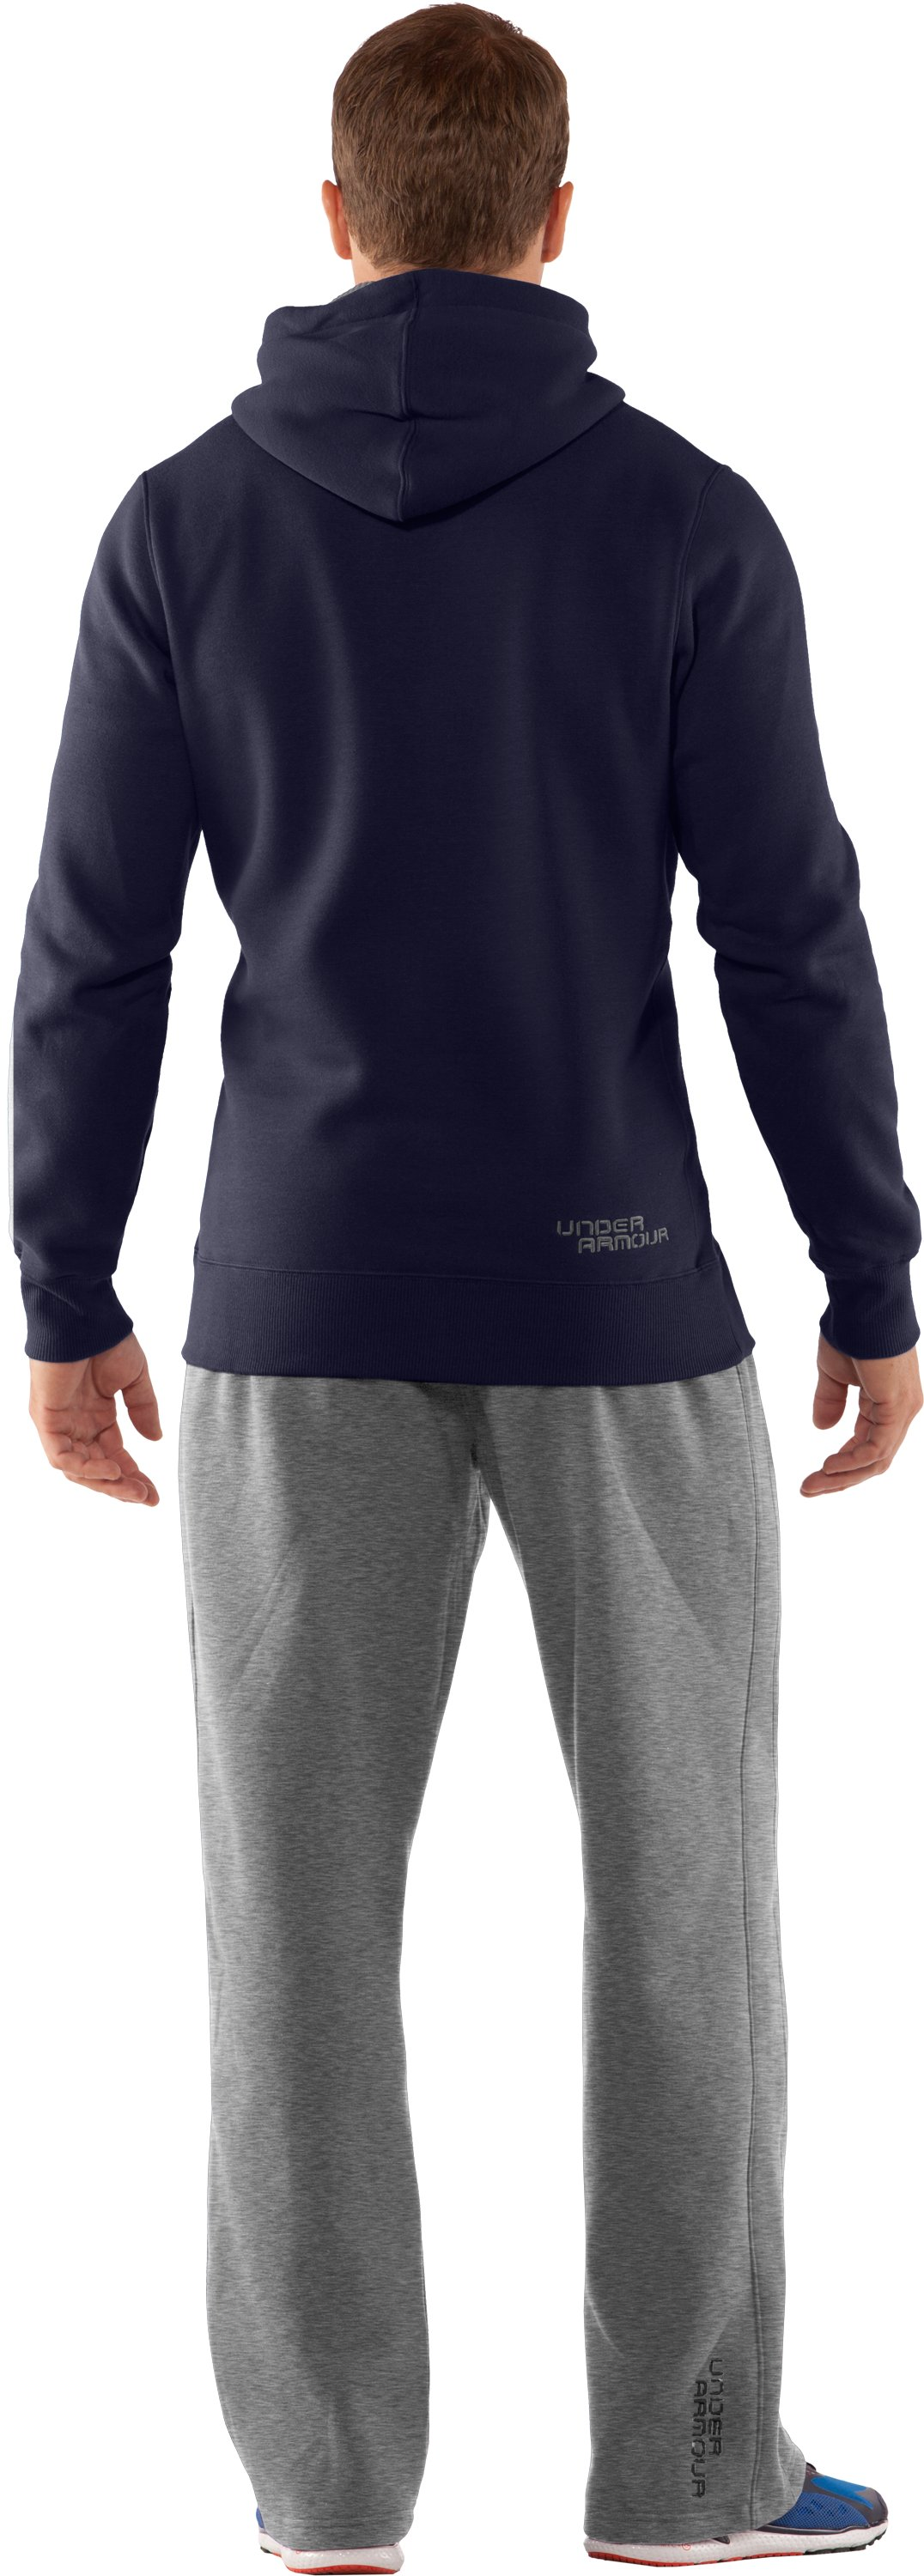 Men's Charged Cotton® Storm Pullover Hoodie, Midnight Navy, Back